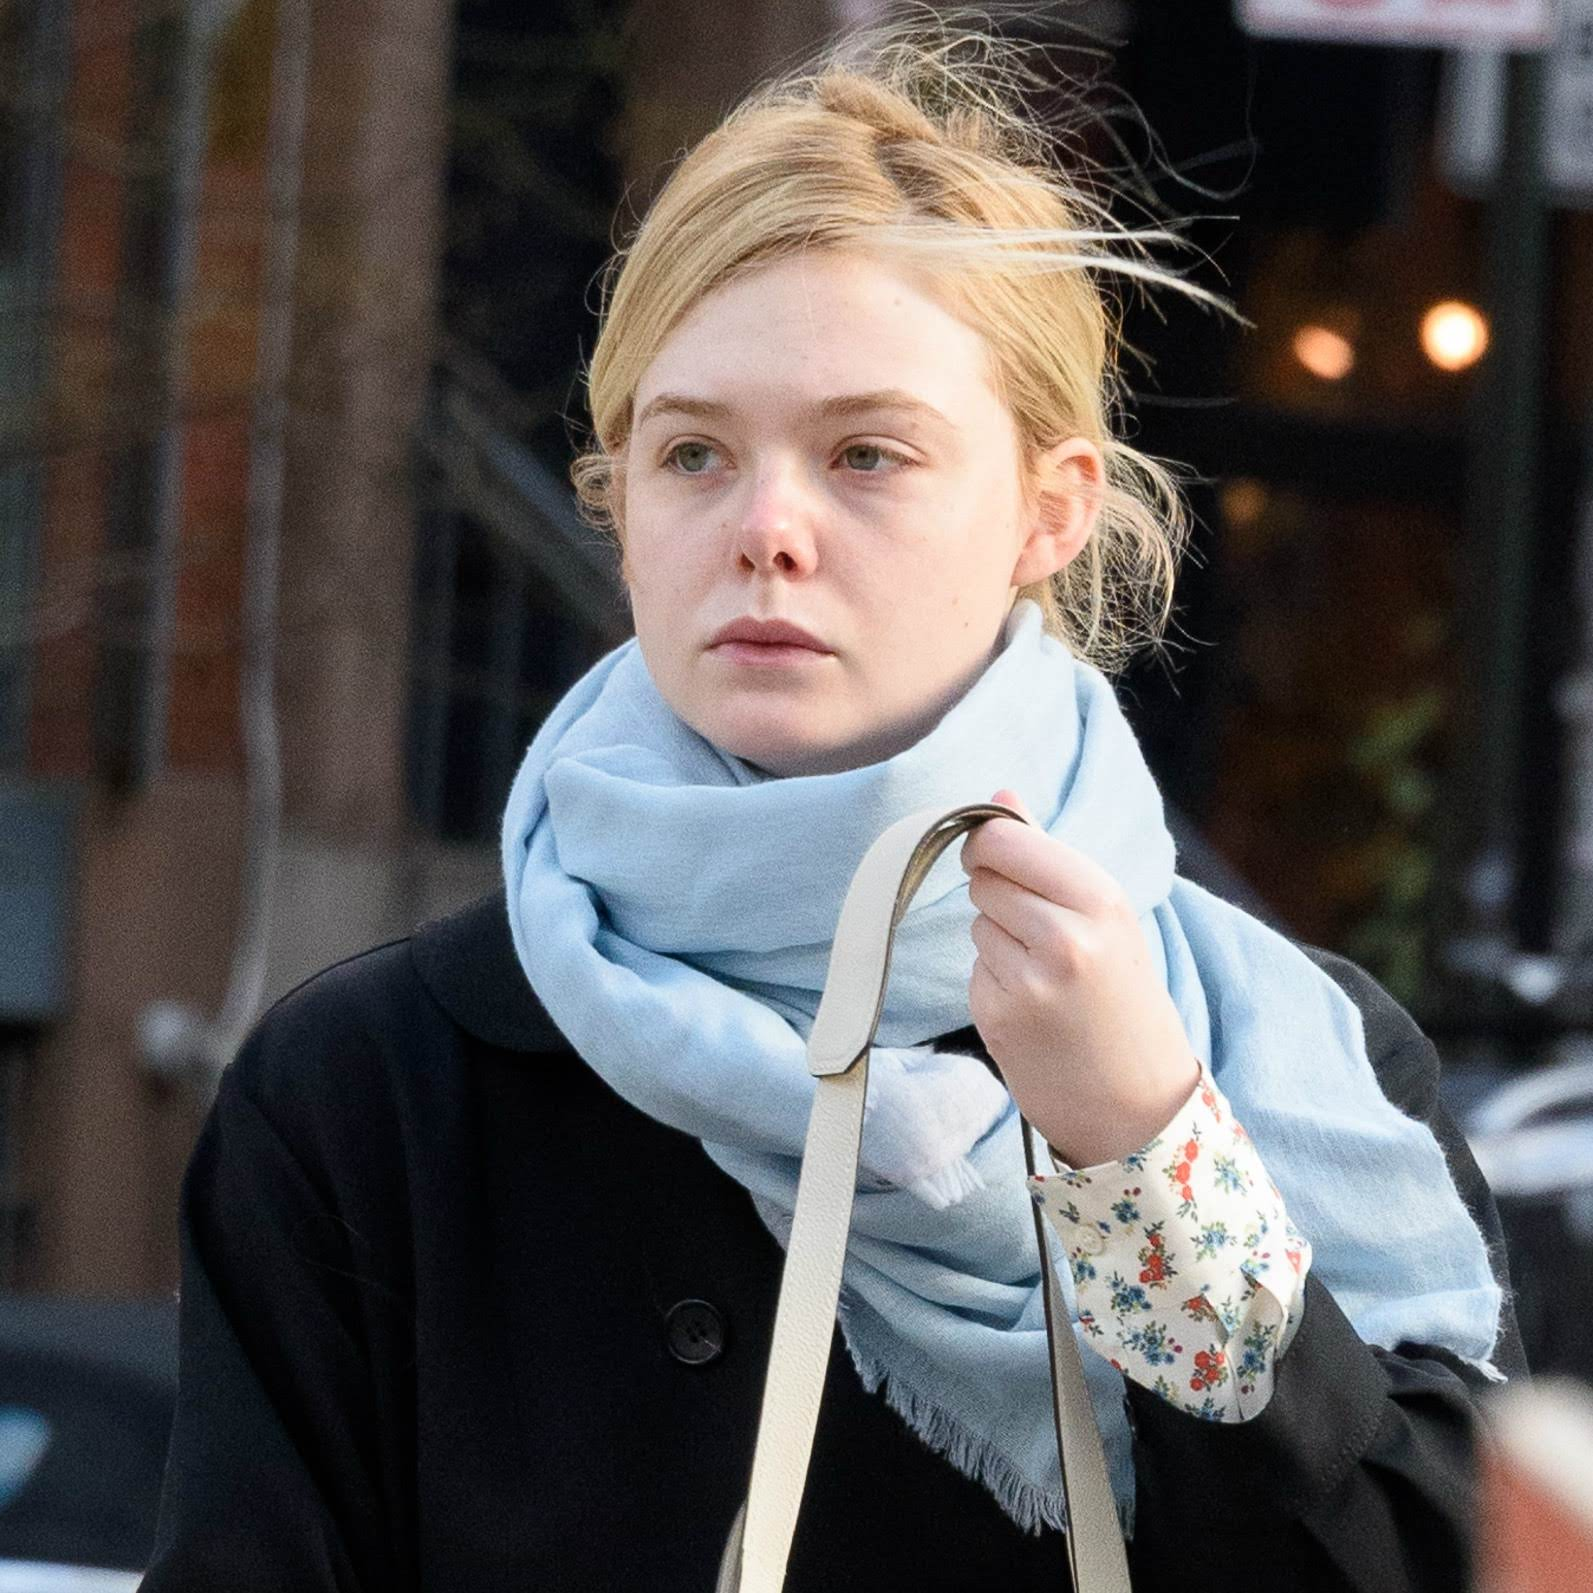 Elle Fanning out in chilly New York : 寒風が吹きすさぶニューヨークのエルたん